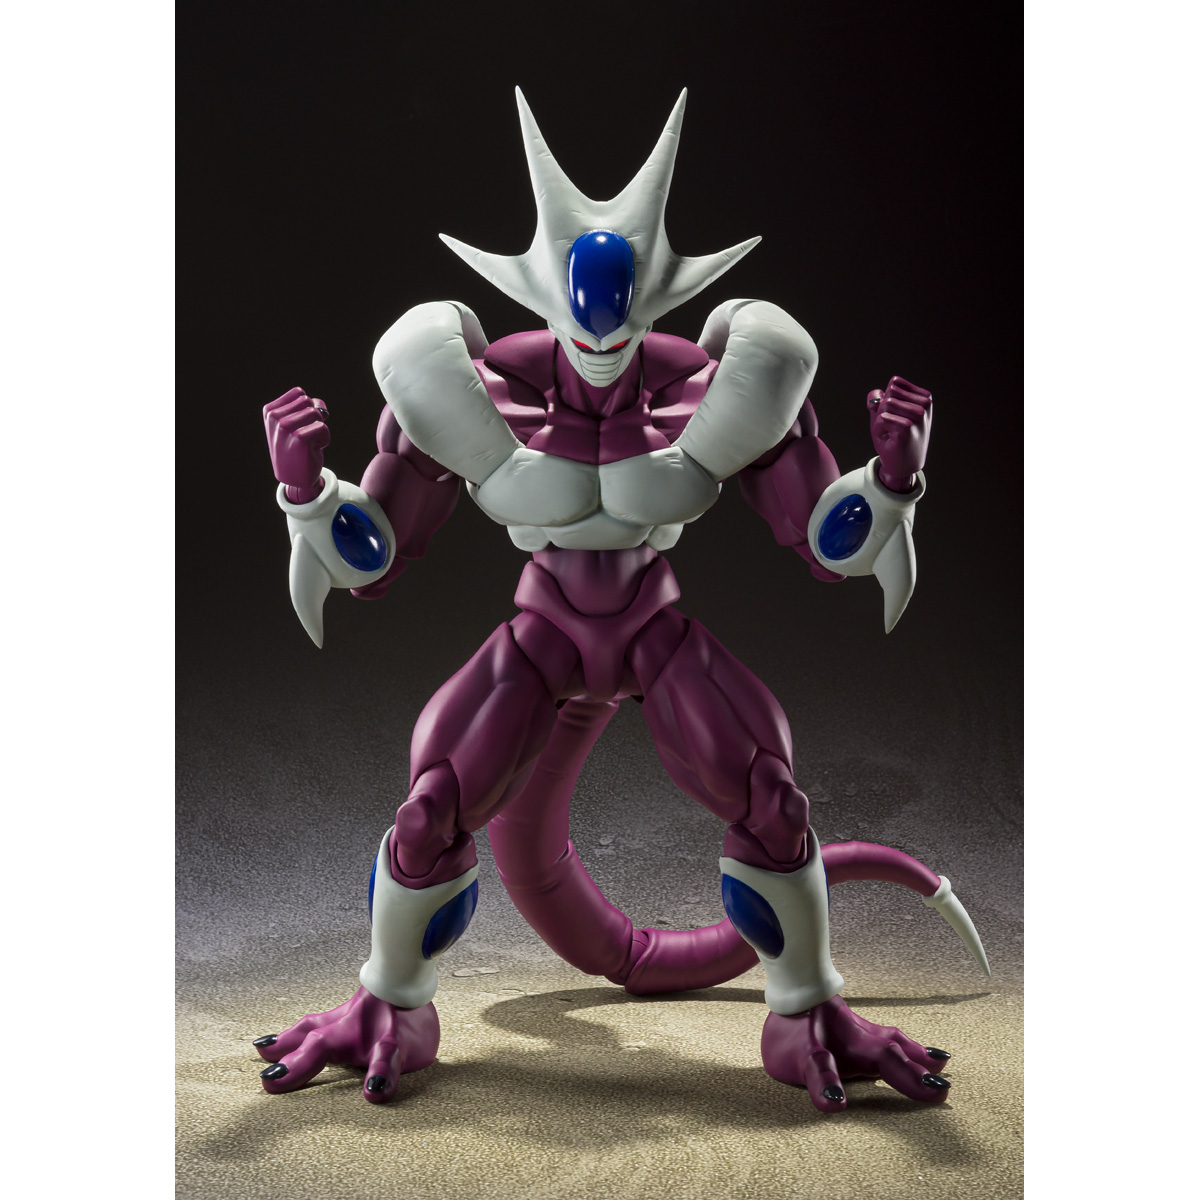 S.H.Figuarts COOLER FINAL FORM